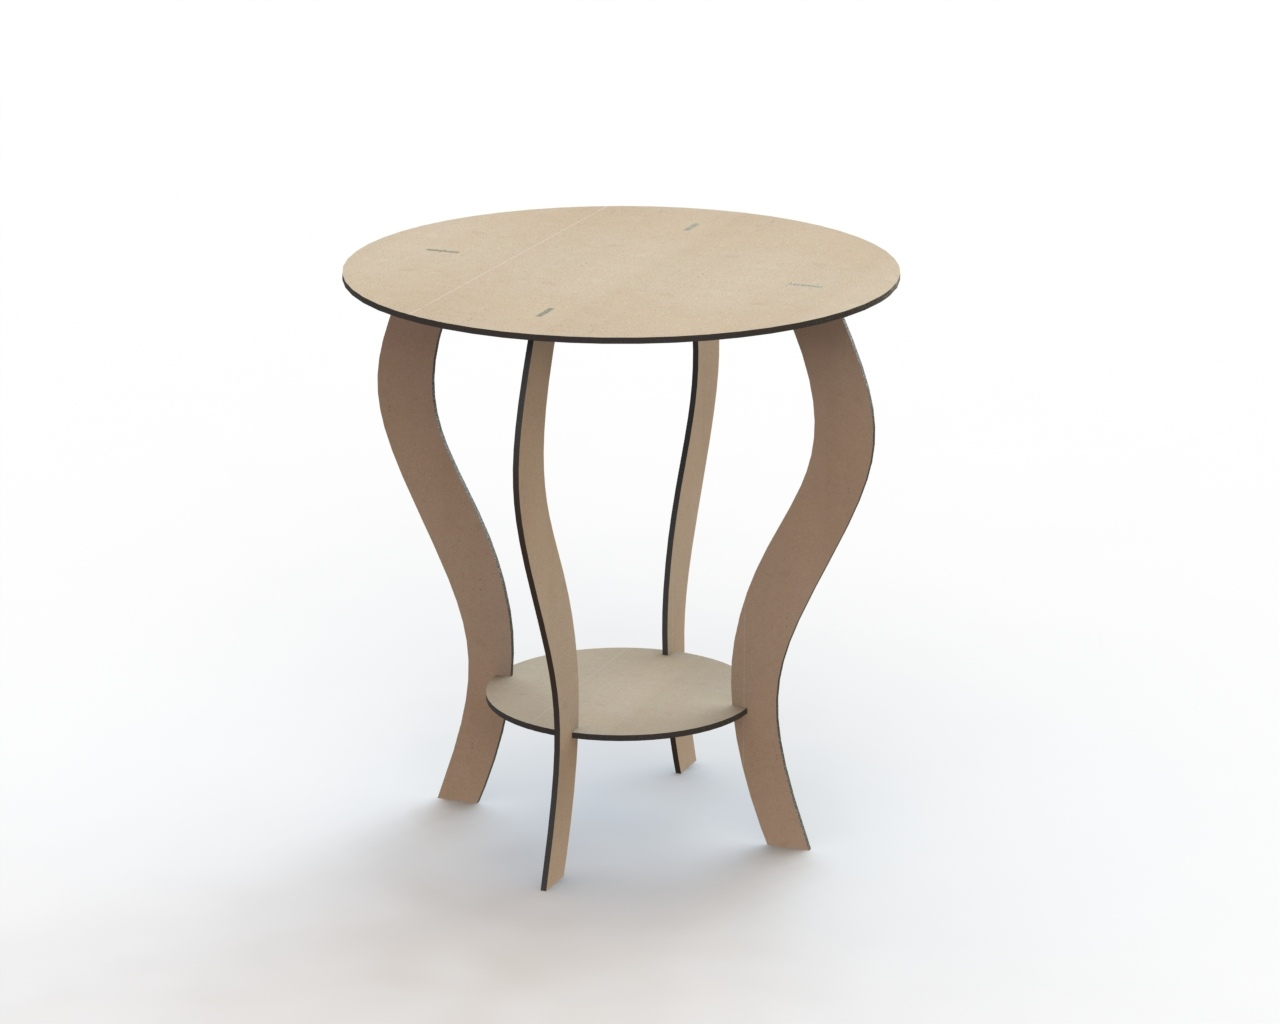 Round Table 650 Mm Free CDR Vectors Art